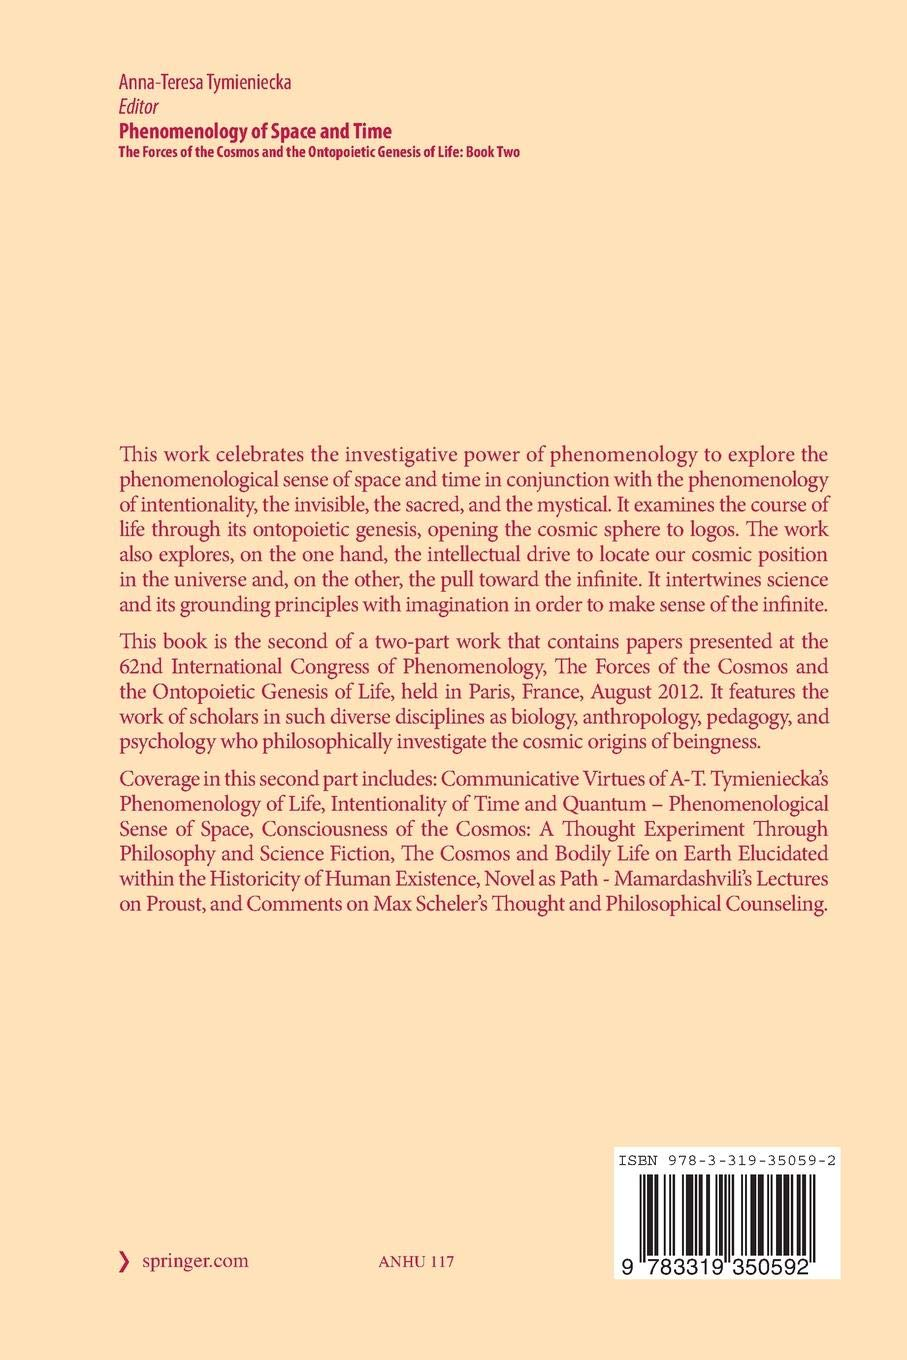 Phenomenology of space and time : the forces of the cosmos and the ontopoietic genesis of life